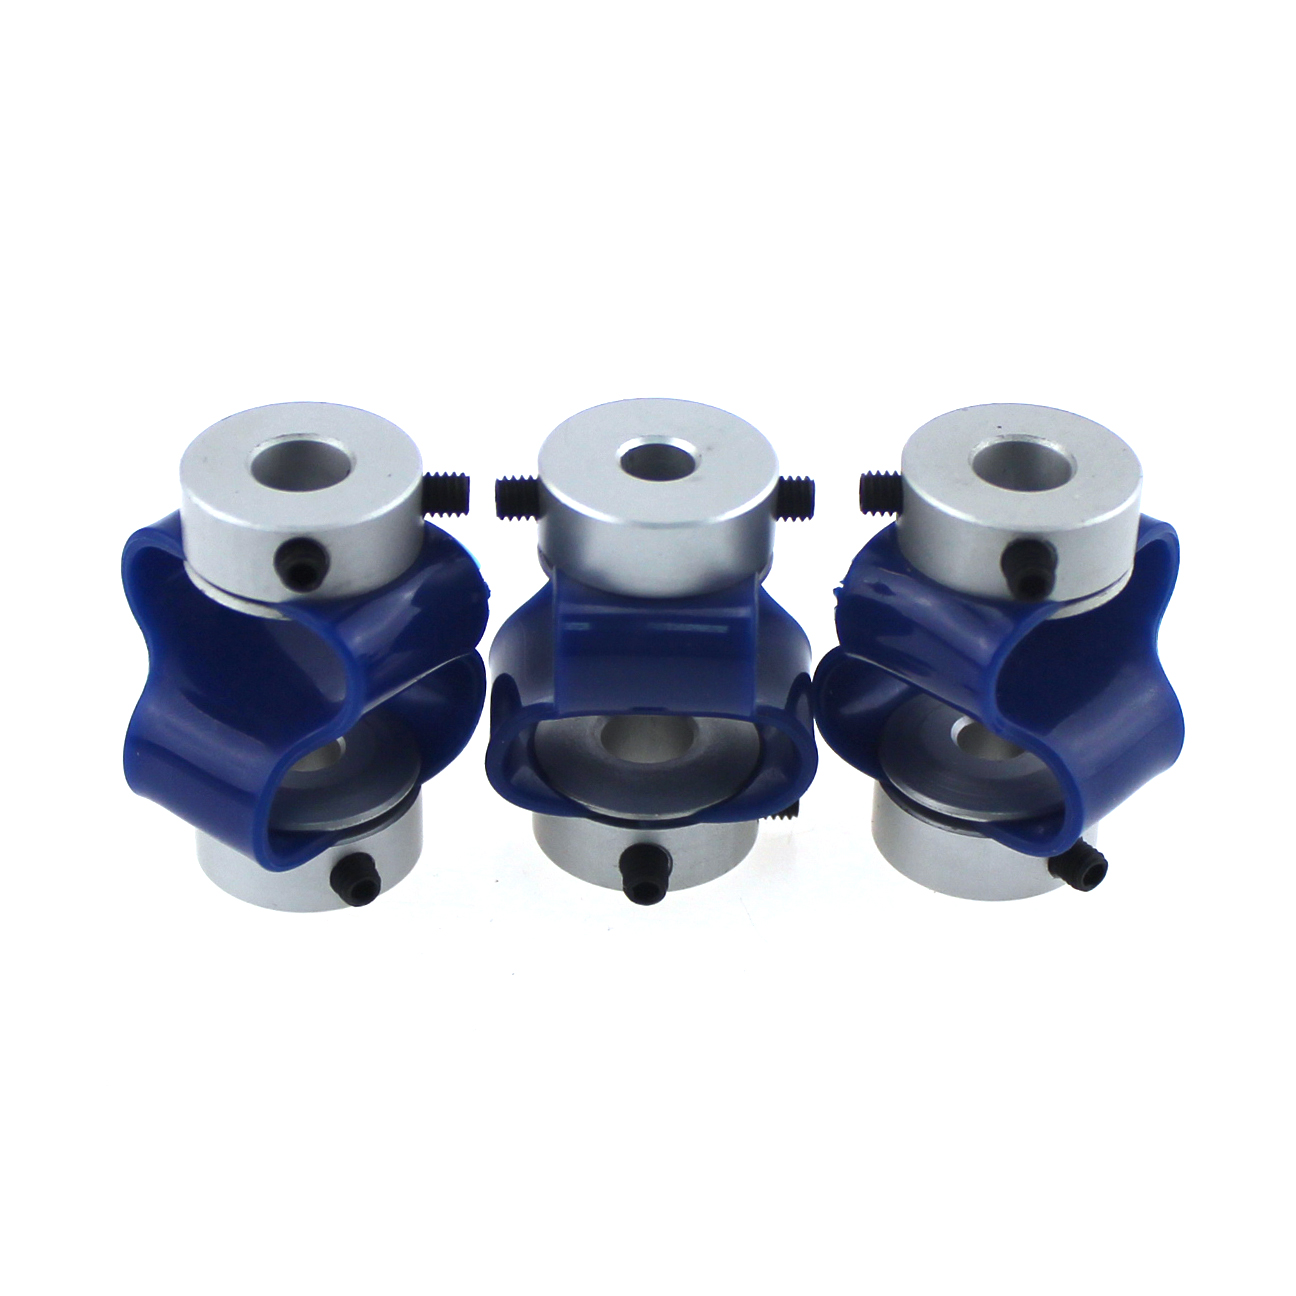 LS-D-D28L38 Encoder coupling 8-shaped coupling stepping servo motor torque Flexible couplings